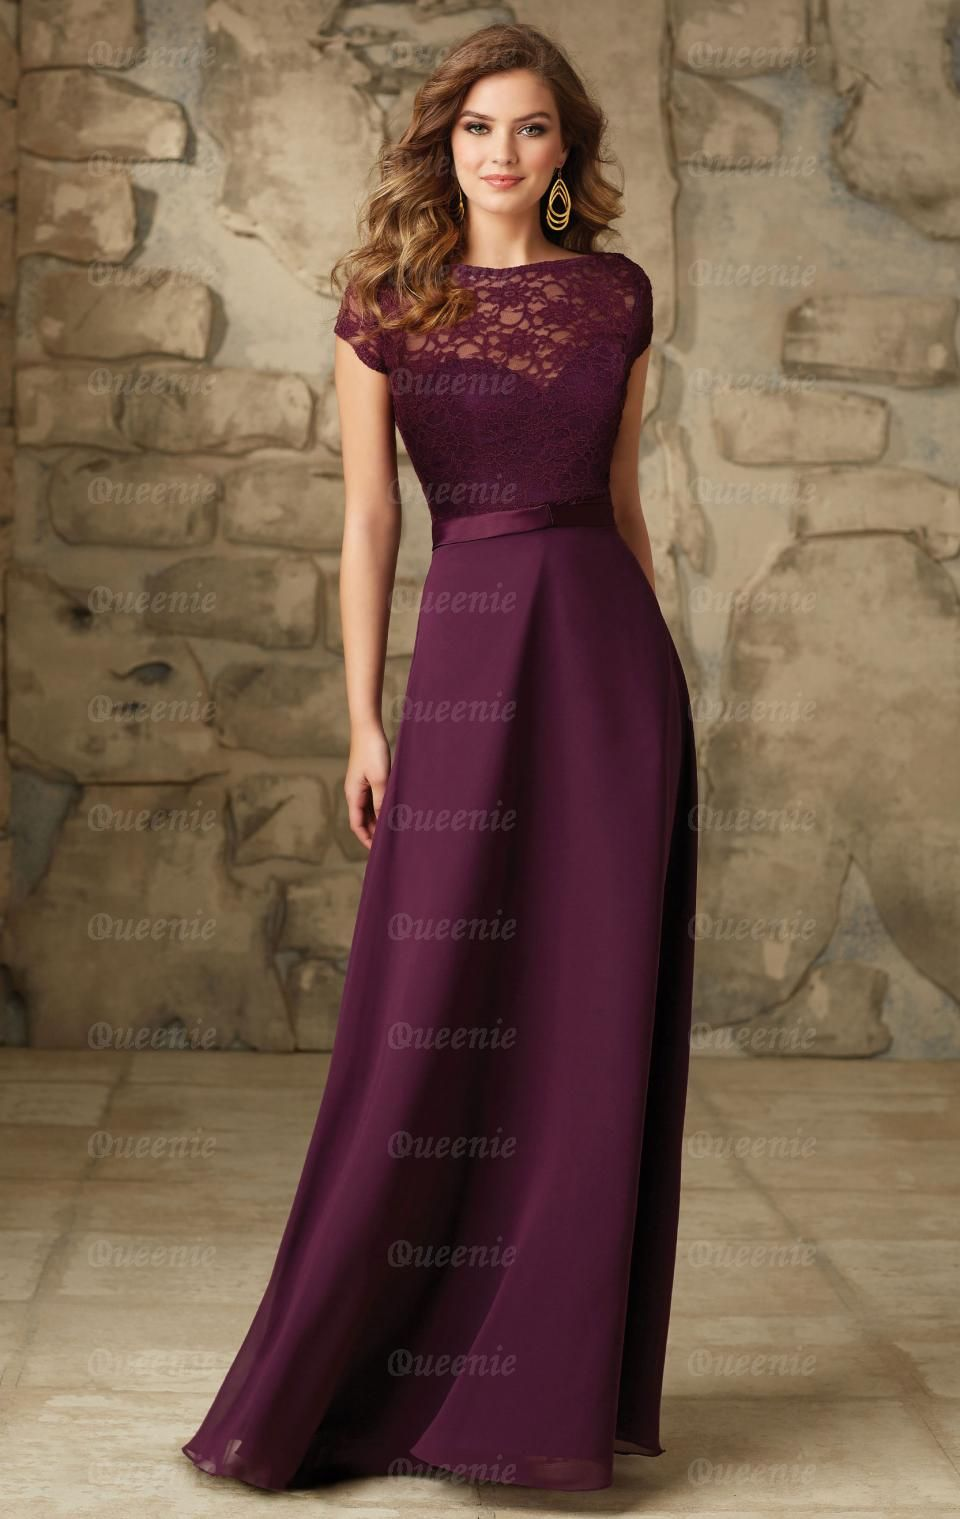 2015 eggplant bridesmaid dress bnncg0014 bridesmaid uk rivka 2015 eggplant bridesmaid dress bnncg0014 bridesmaid uk rivka pinterest cheap bridesmaid dresses online bridesmaid dresses online and wedding ombrellifo Image collections